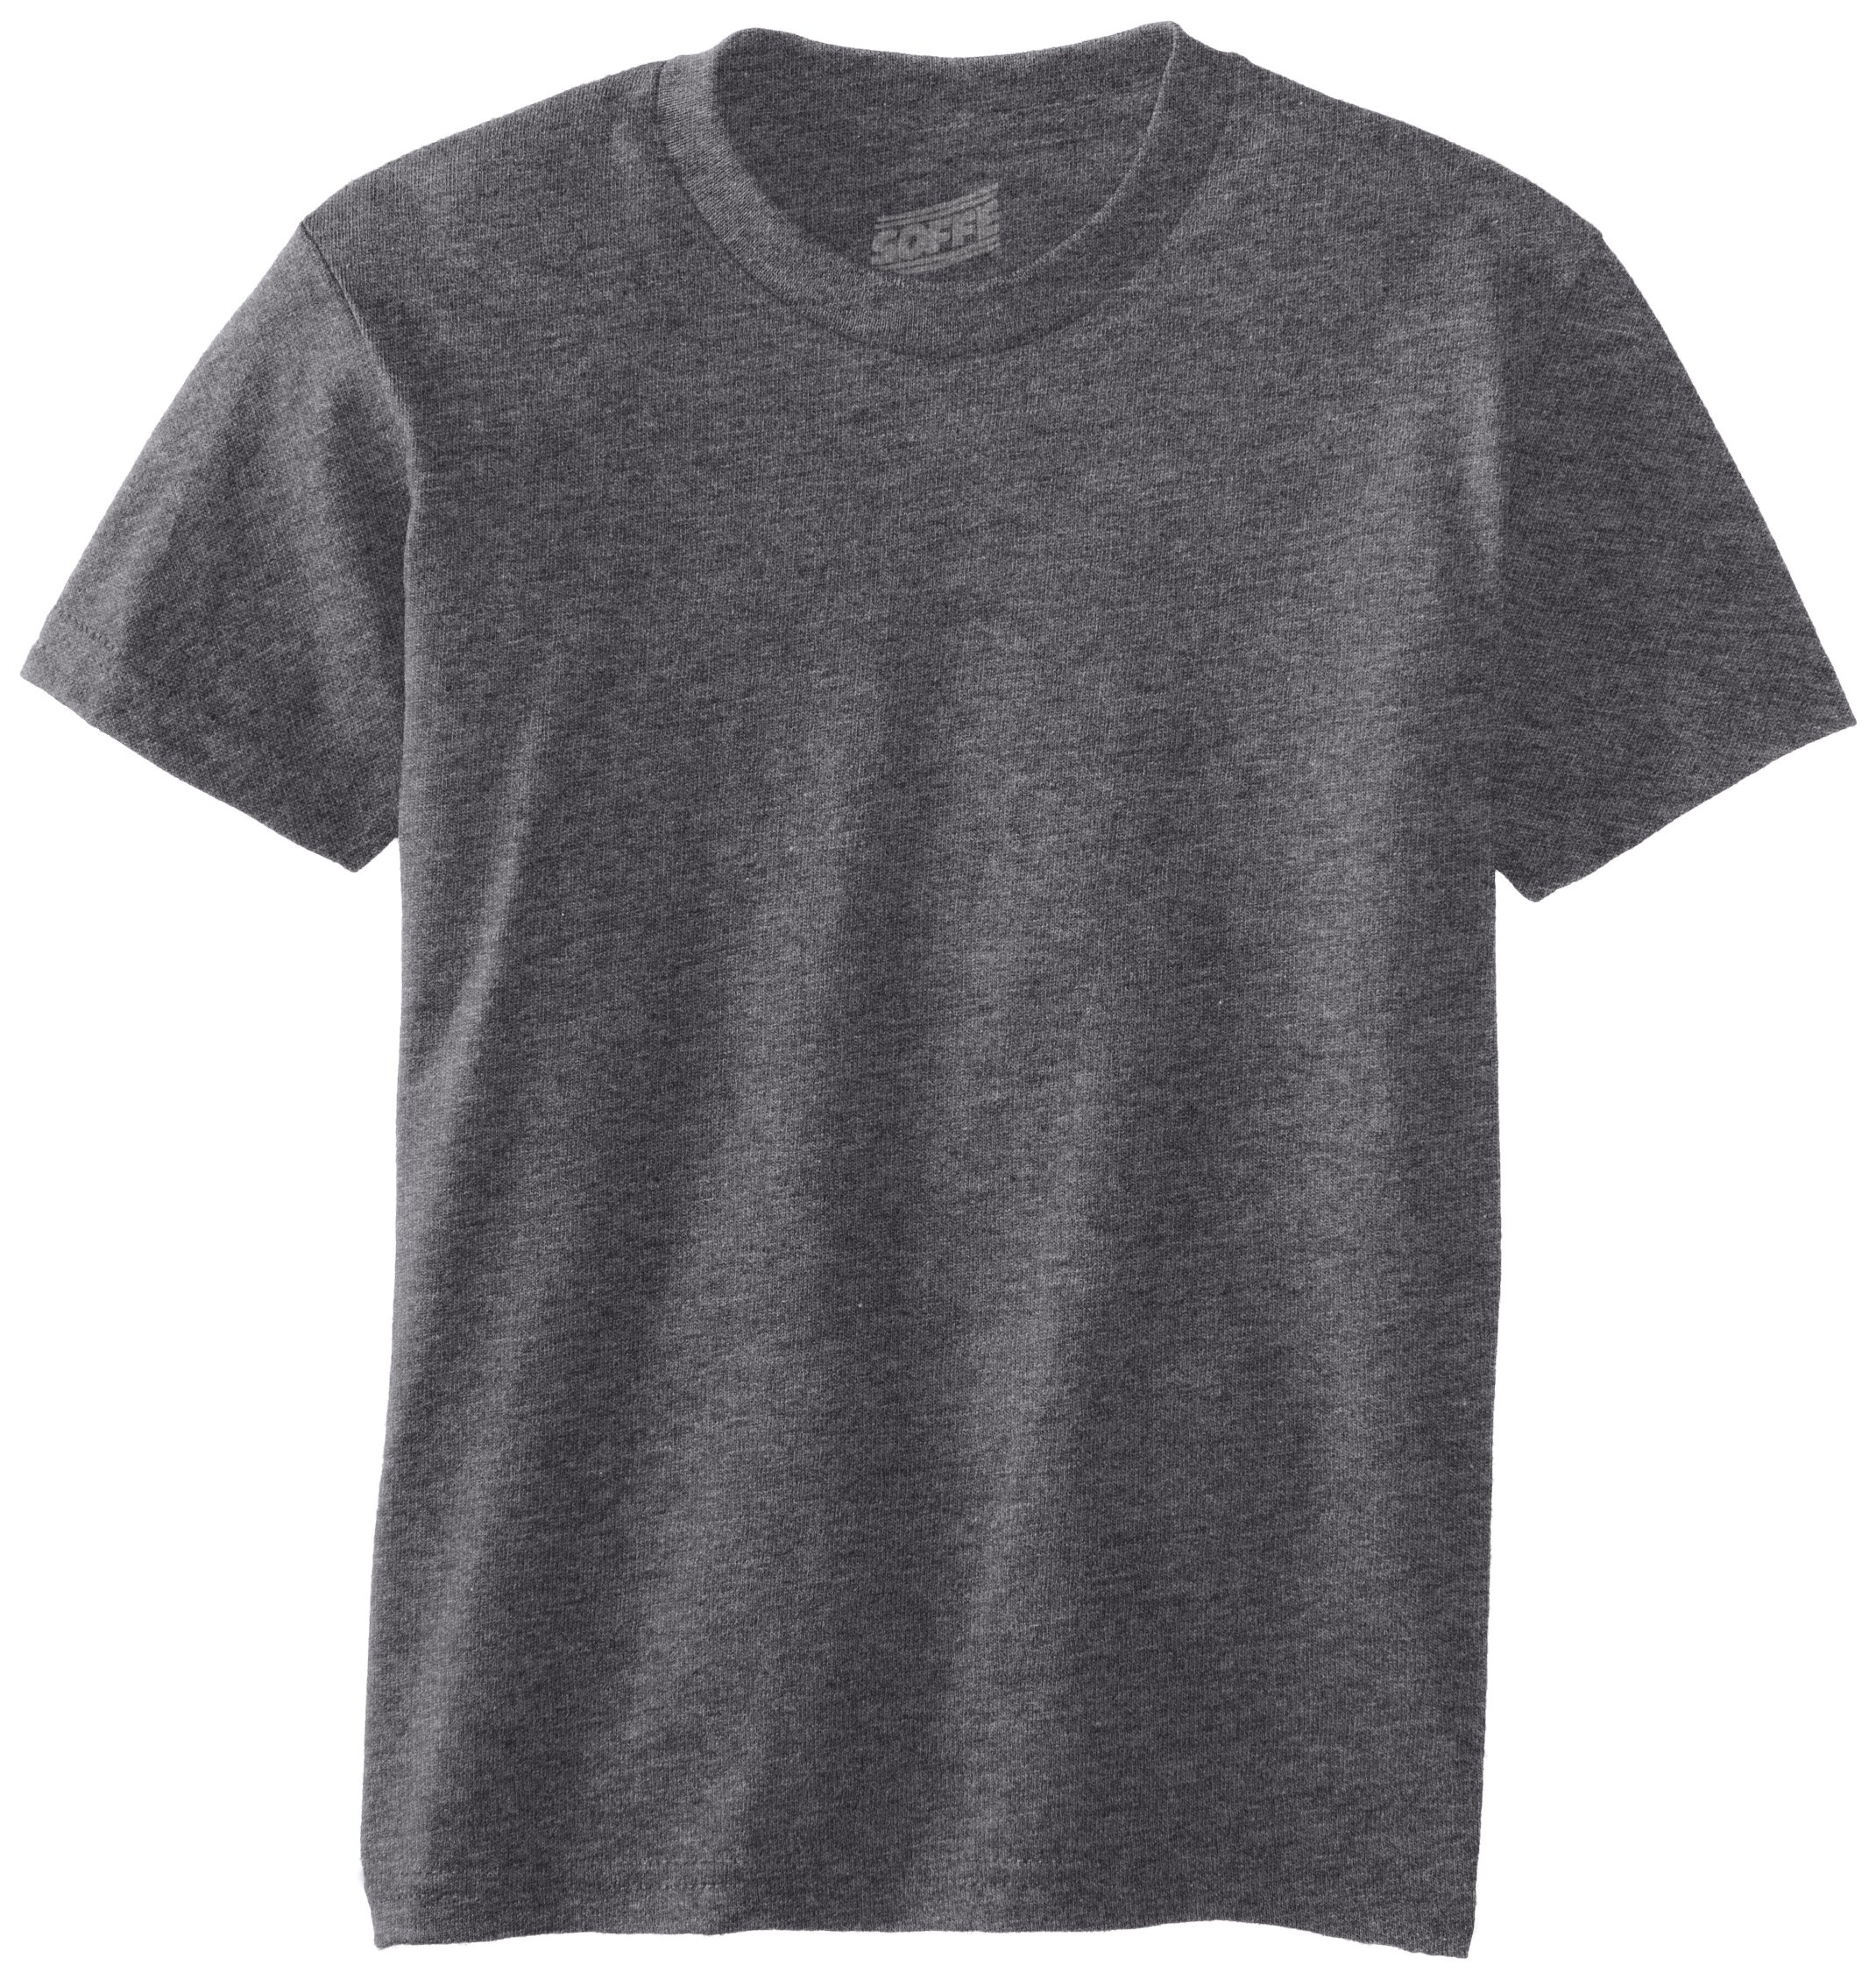 MJ Soffe Big Boys' Youth Pro Weight Short Sleeve Tee, Charcoal Heather, Large